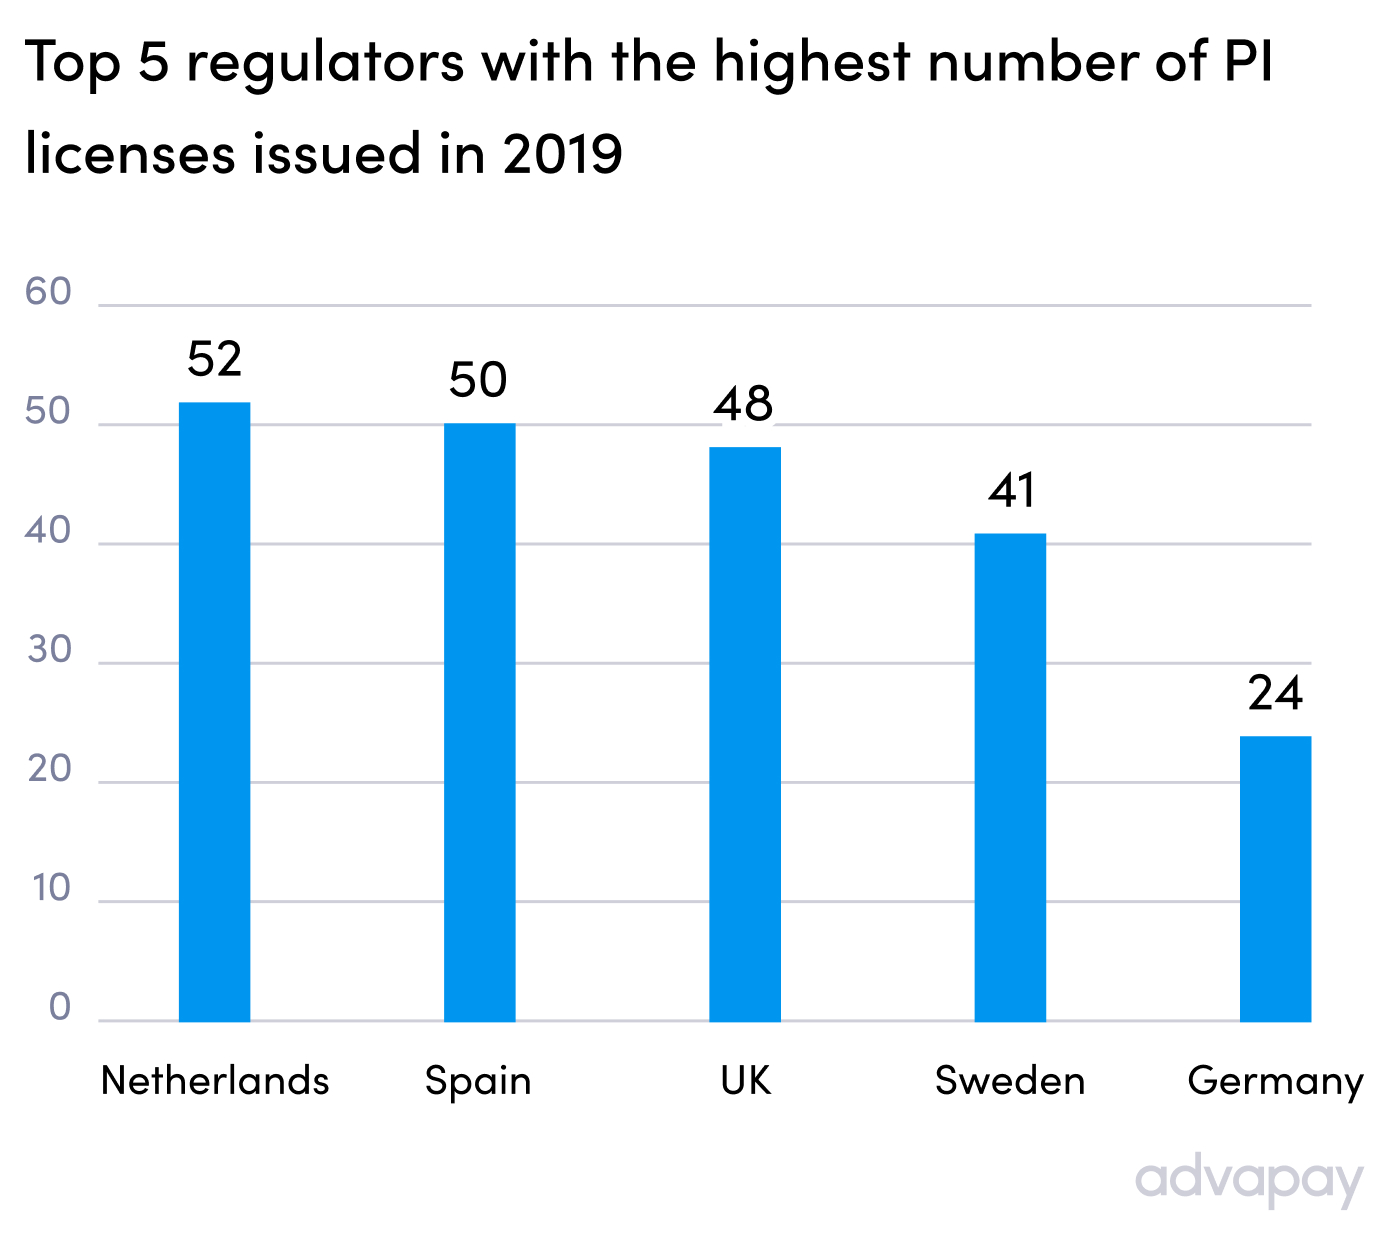 Top 5 regulators with the highest number of PI licenses issued in 2019